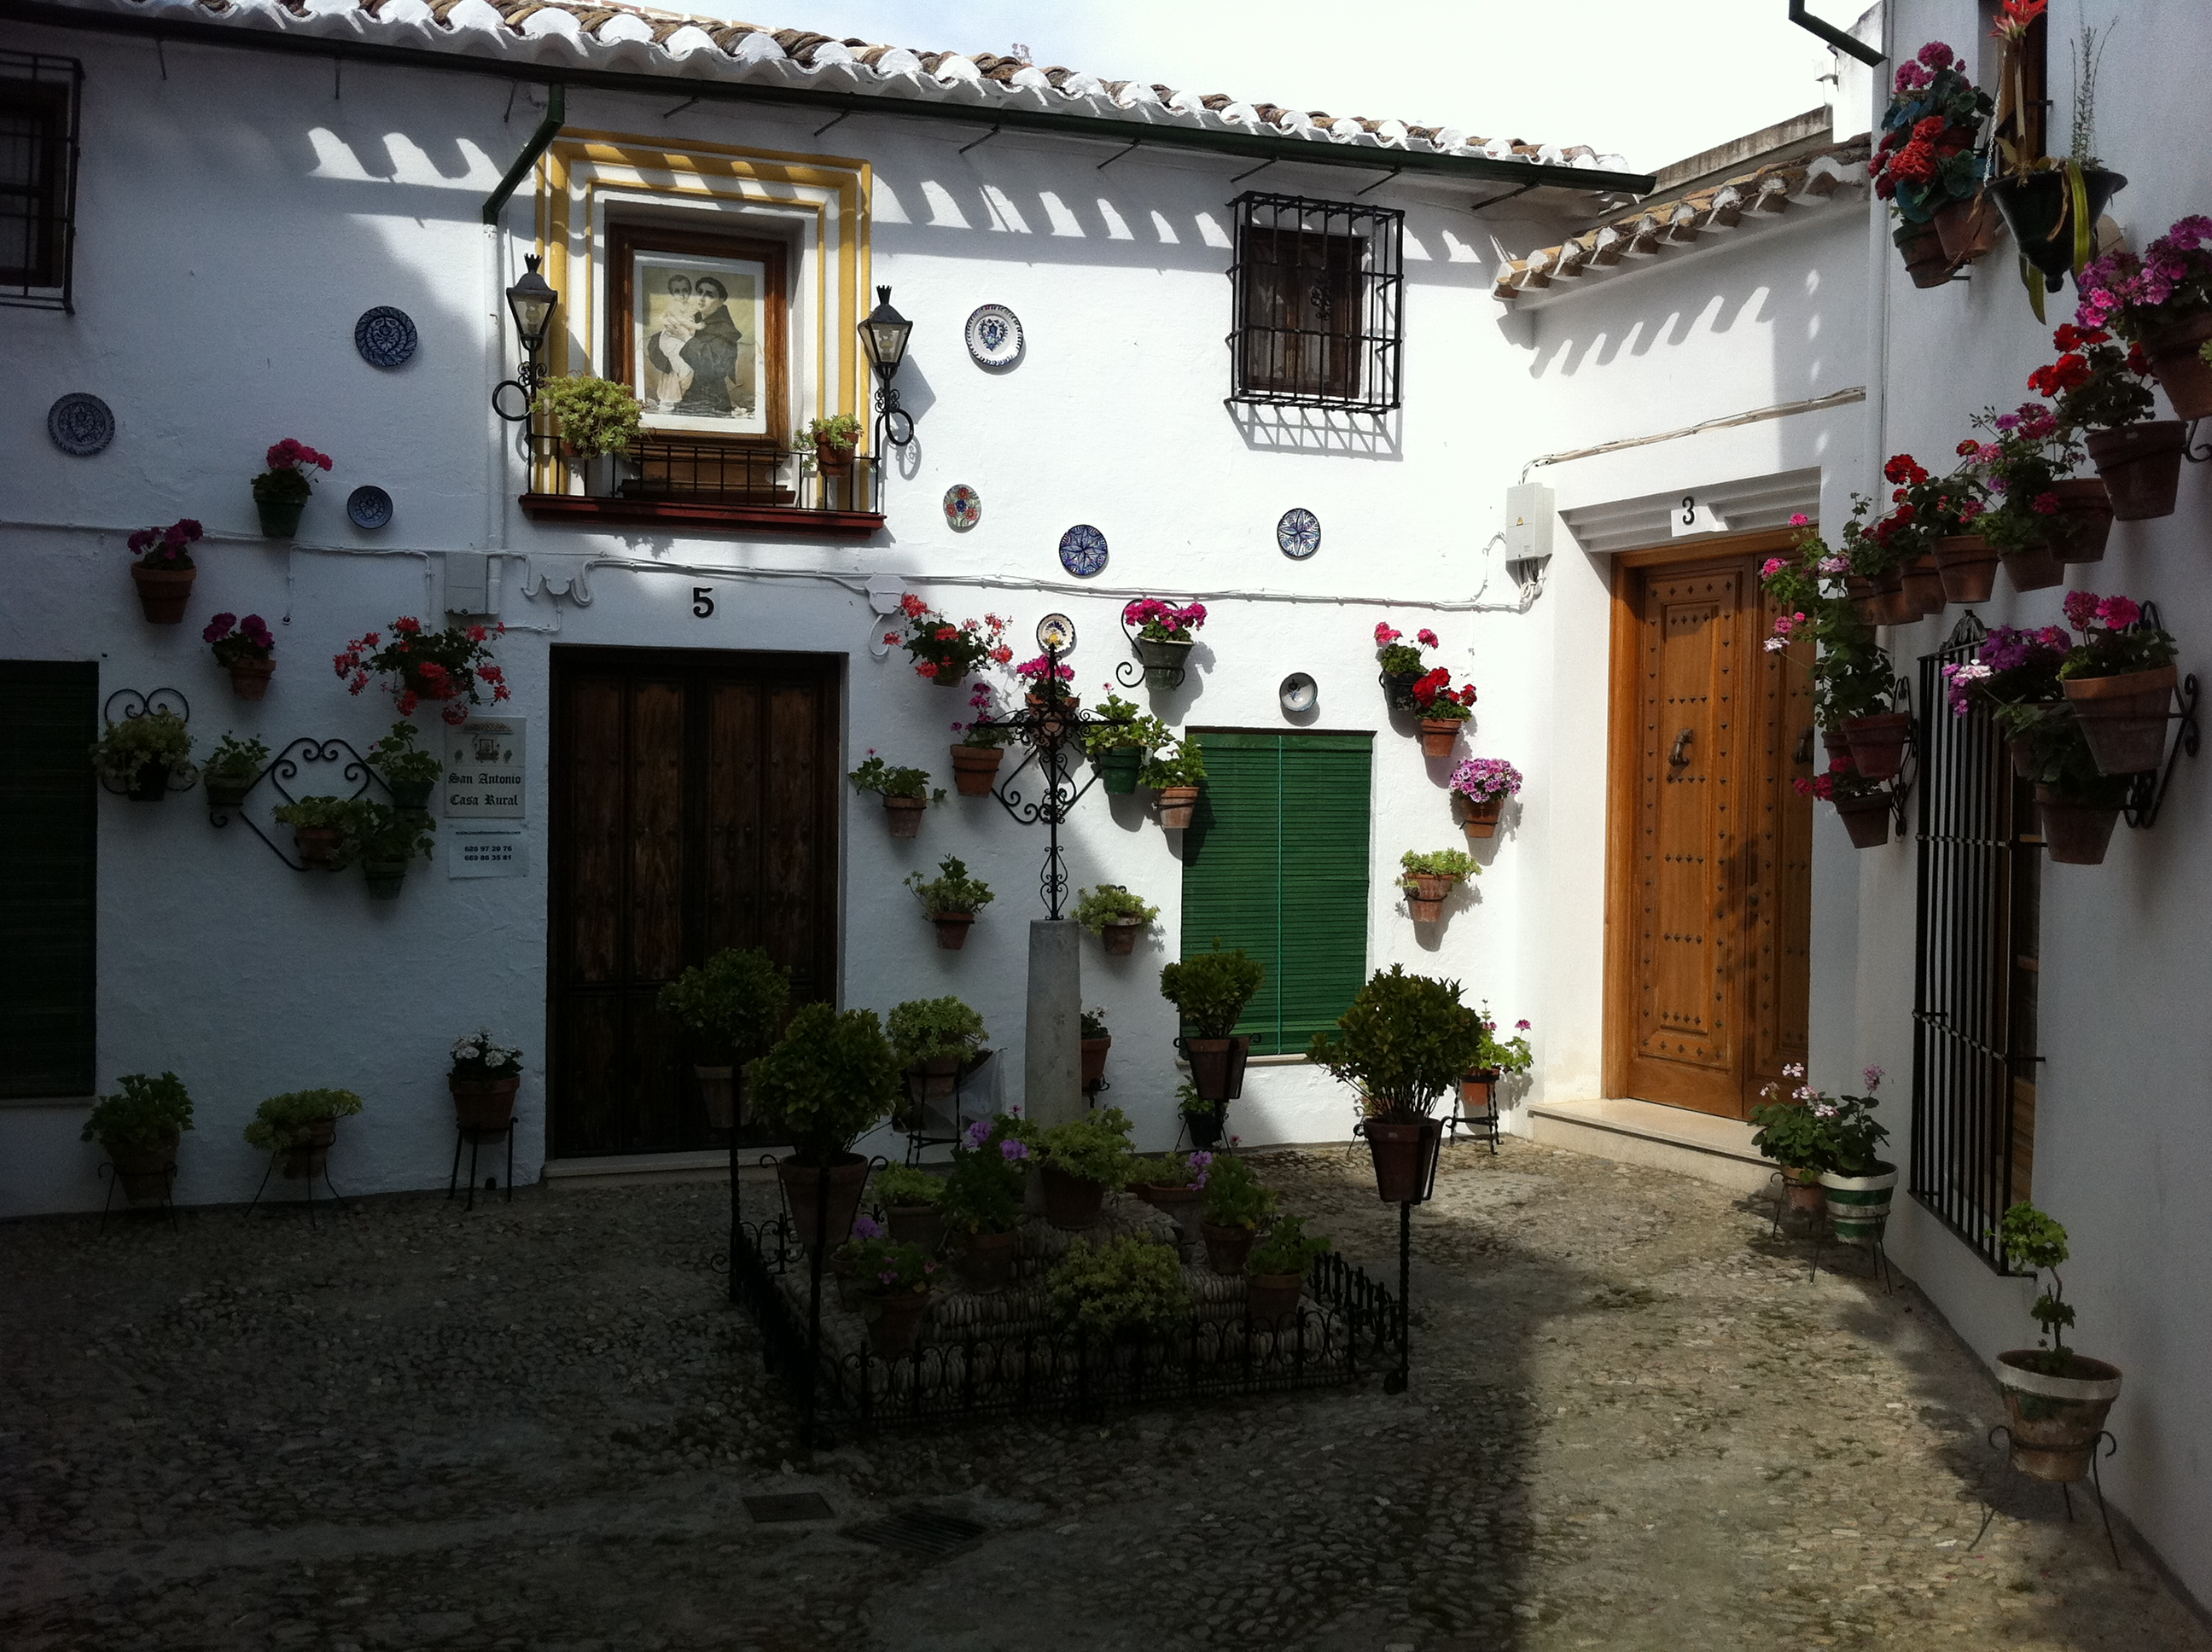 Villages in Southern Spain